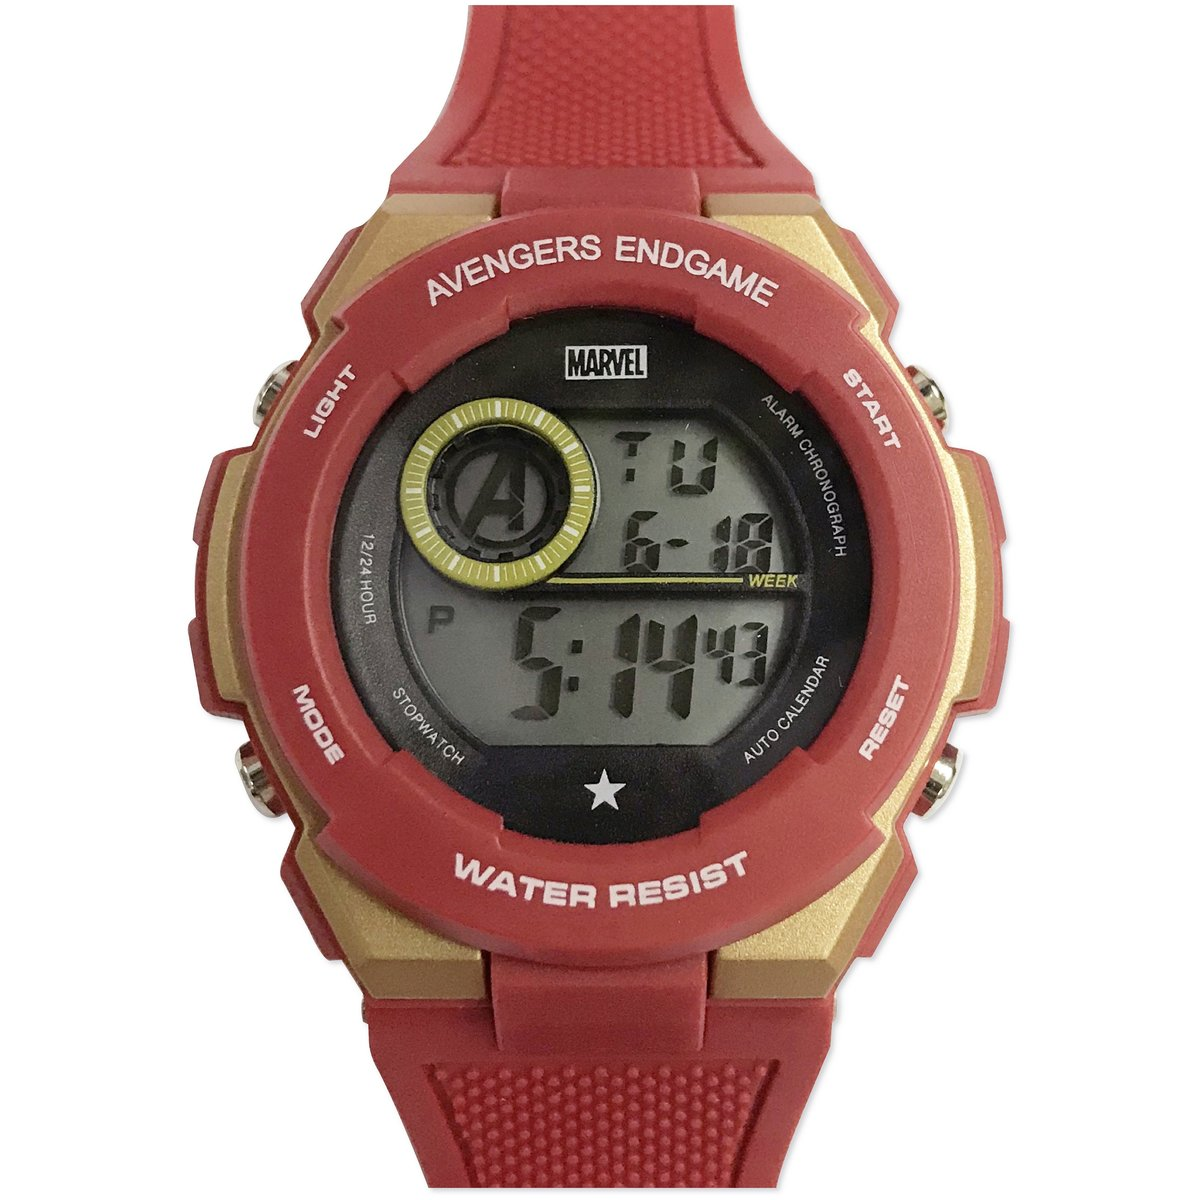 MARVEL - DIGITAL WATCH (RED & GOLD) (Licensed by Disney)